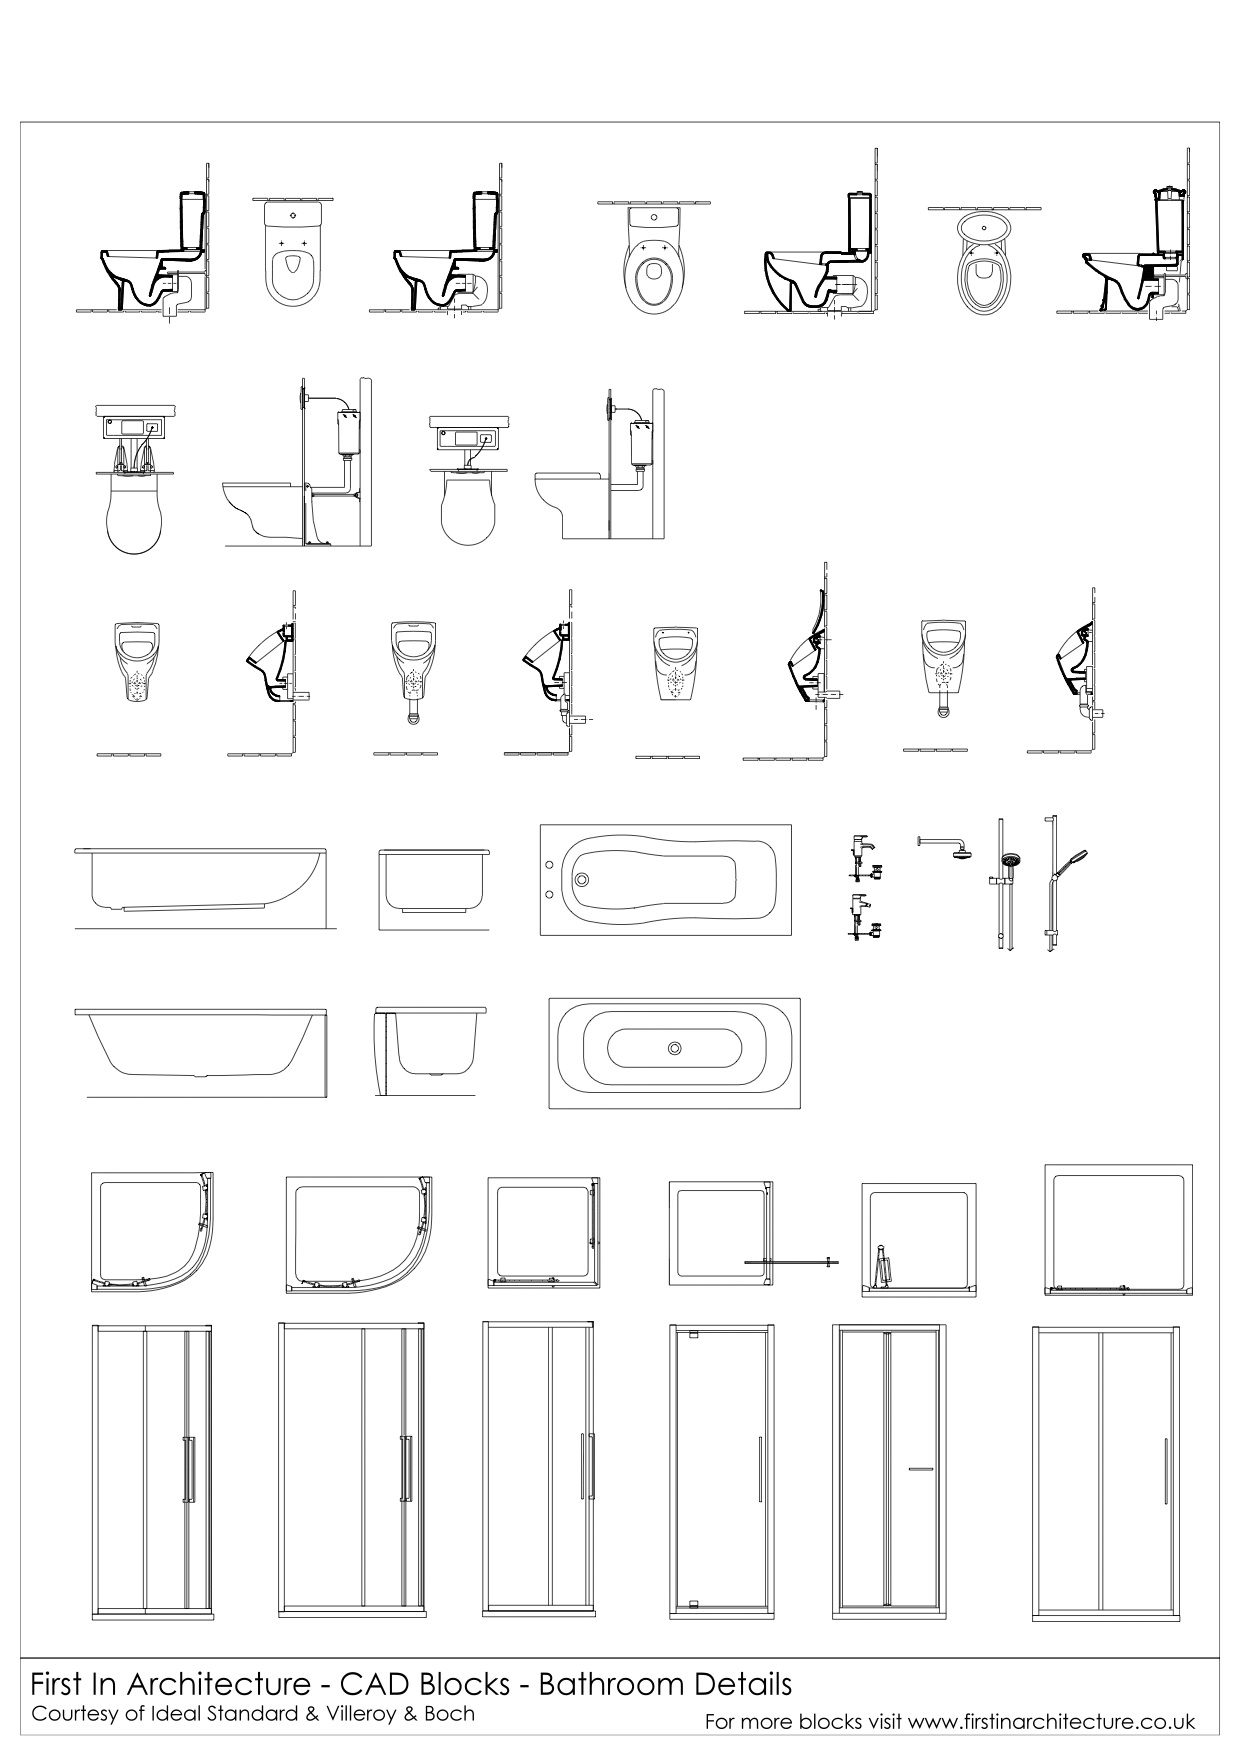 Free Cad Blocks Bathroom Detail Mega Pack First In Architecture